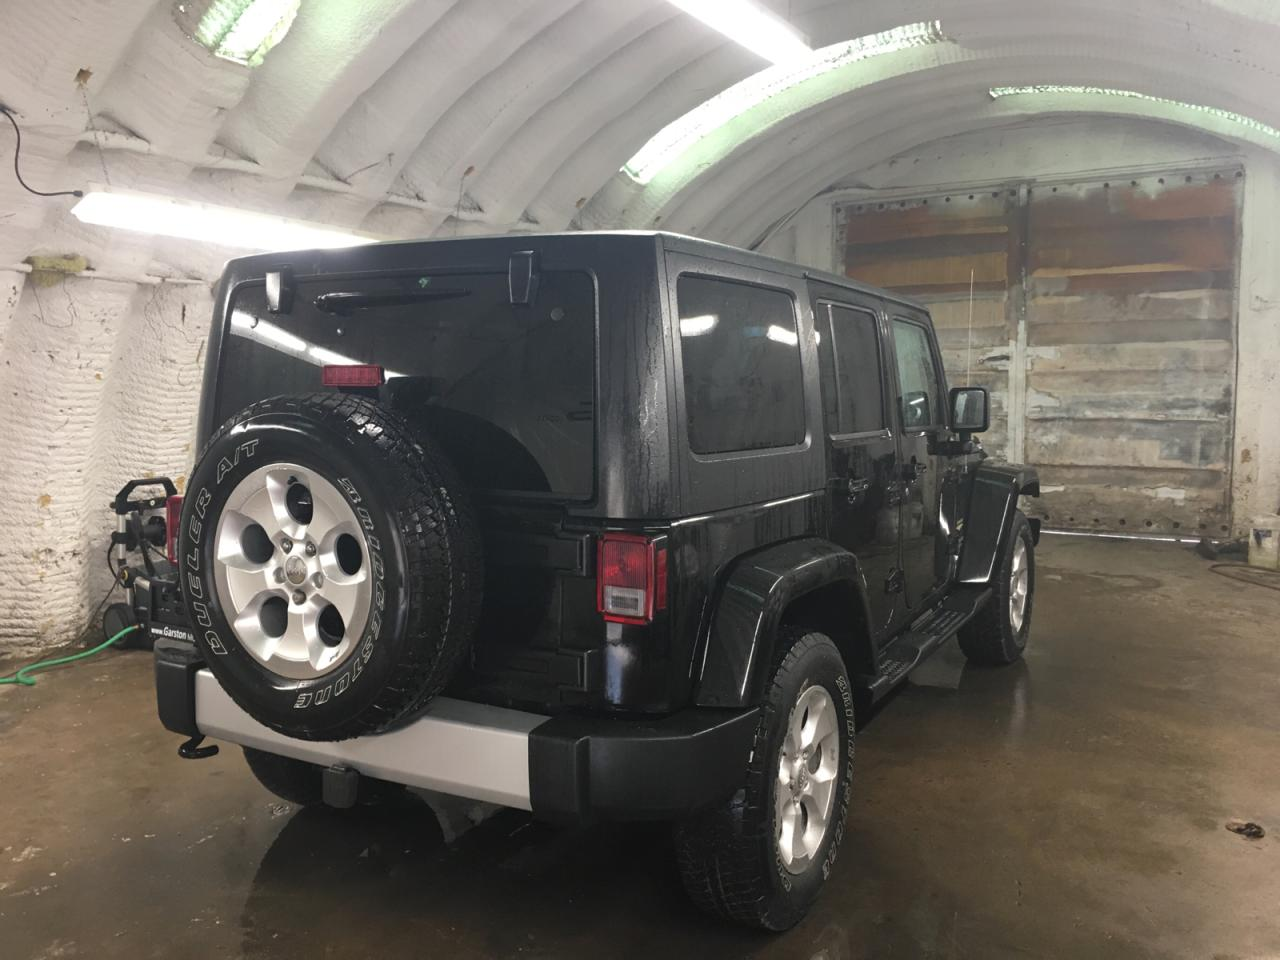 used 2015 jeep wrangler unlimitied sahara navigation 4wd u connect phone removable hard top roof. Black Bedroom Furniture Sets. Home Design Ideas